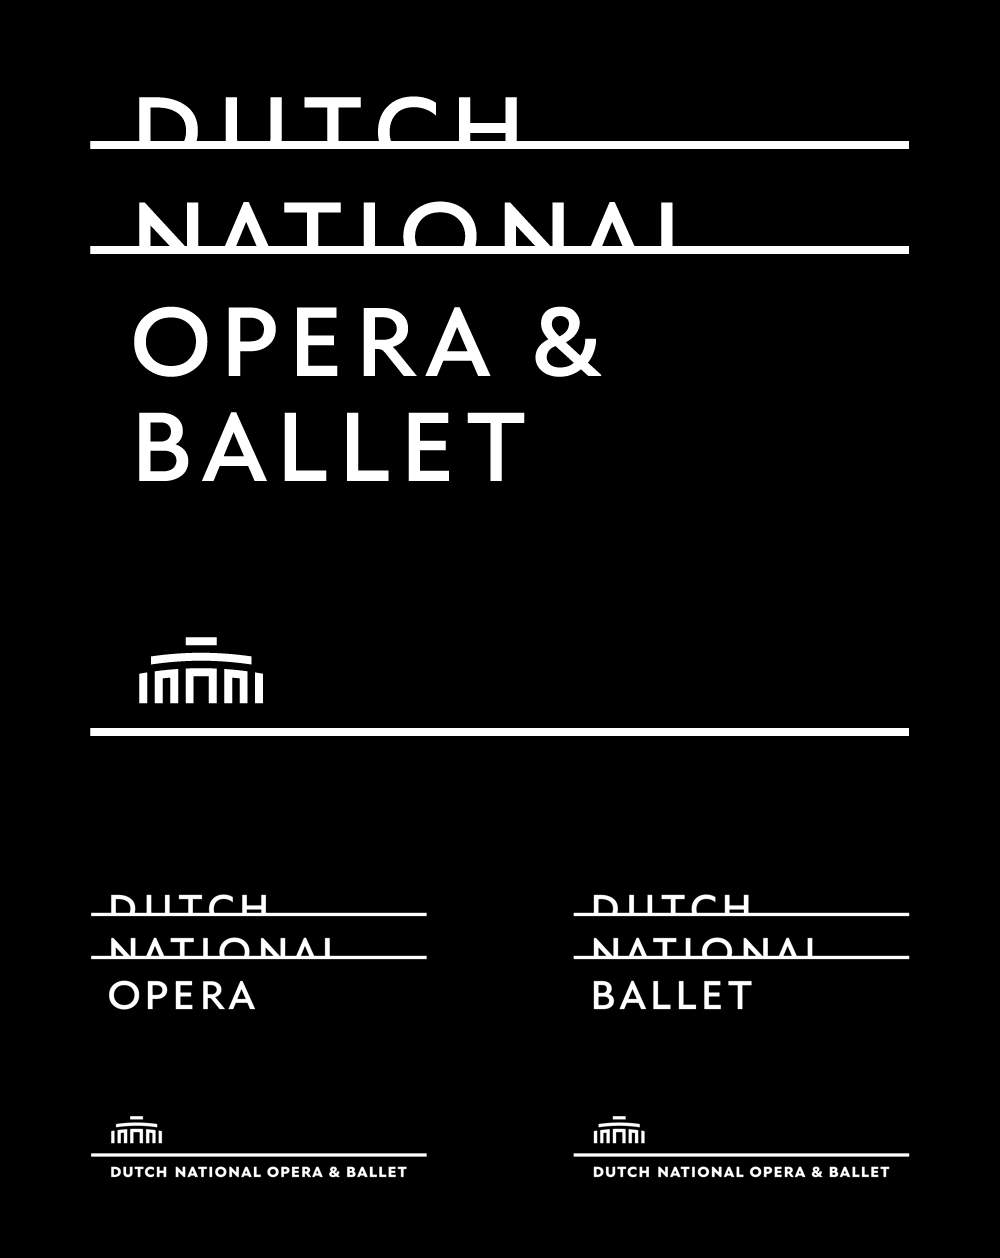 New Logo and Identity for Dutch National Opera & Ballet by Lesley Moore